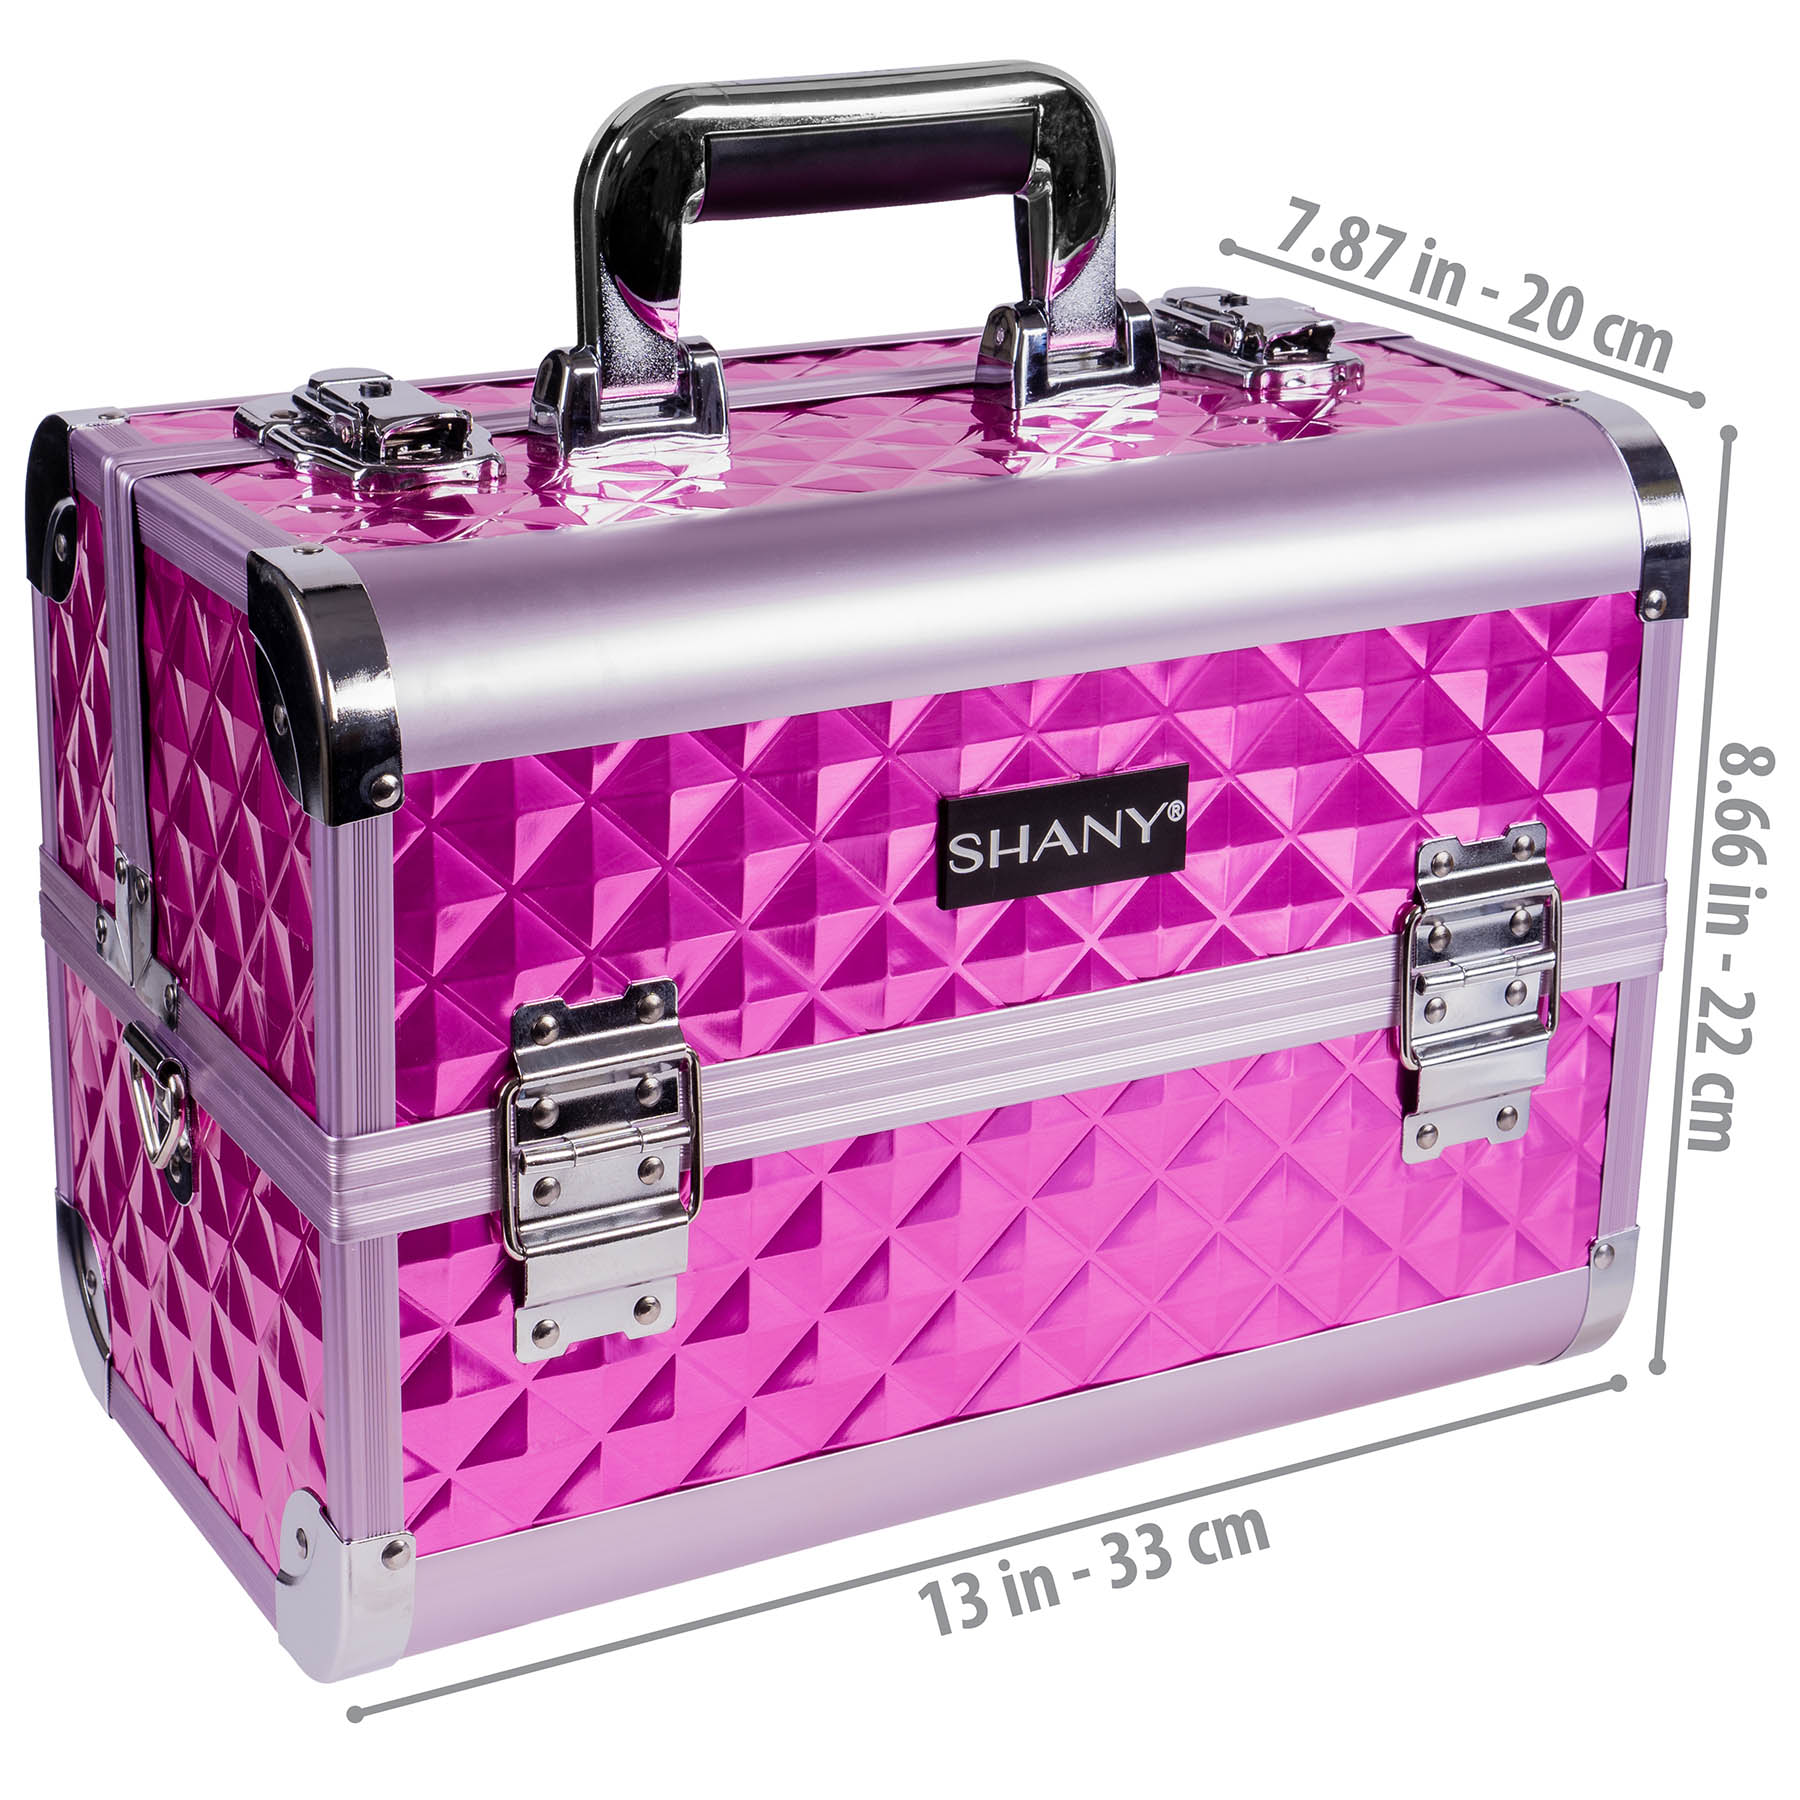 SHANY-Fantasy-Collection-Makeup-Artists-Cosmetics-Train-Case miniature 45